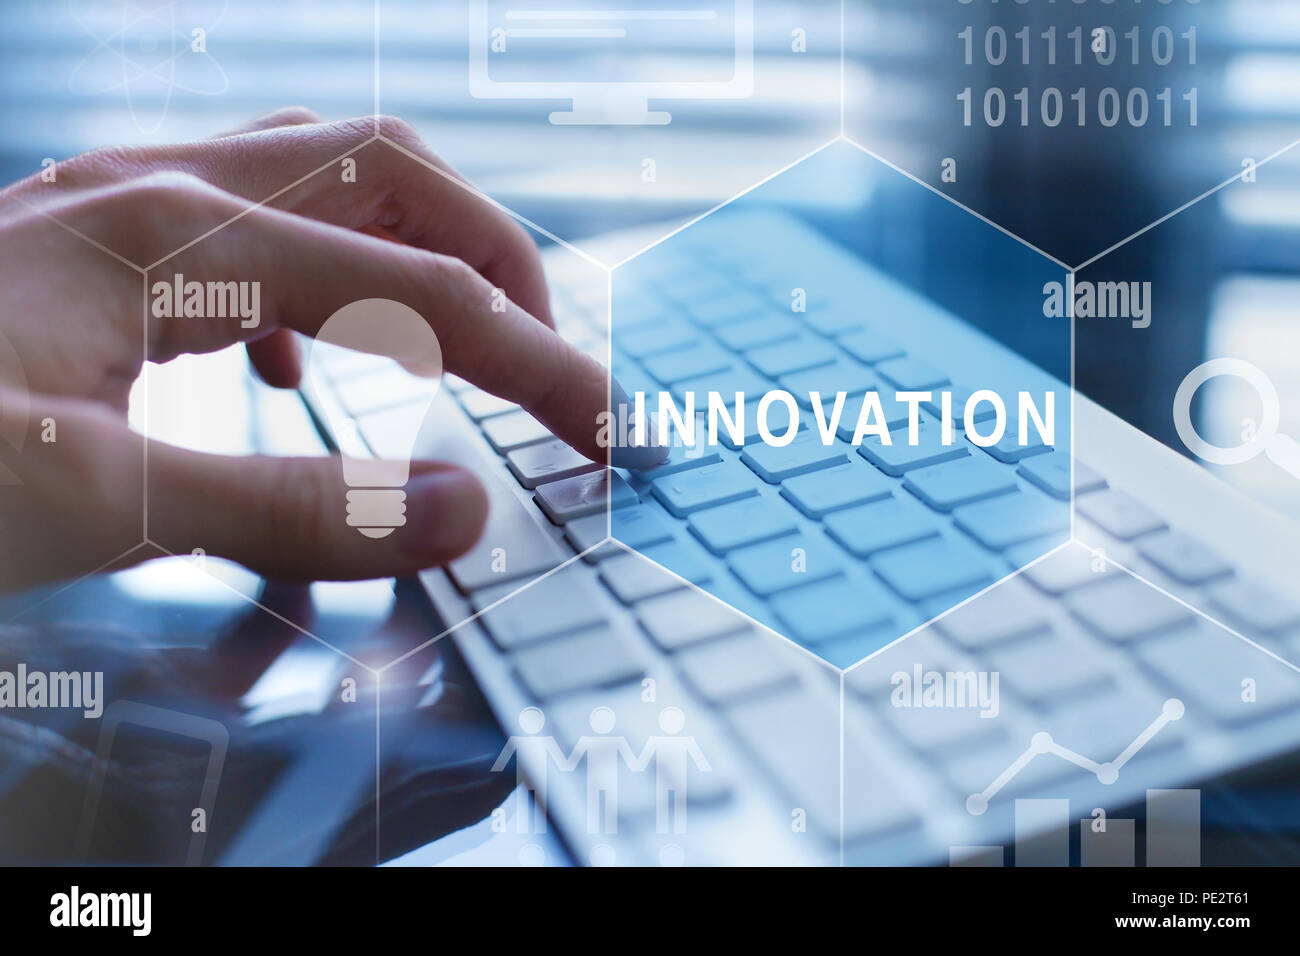 innovation concept, new digital technology, idea and development icons, hands typing on computer on background - Stock Image